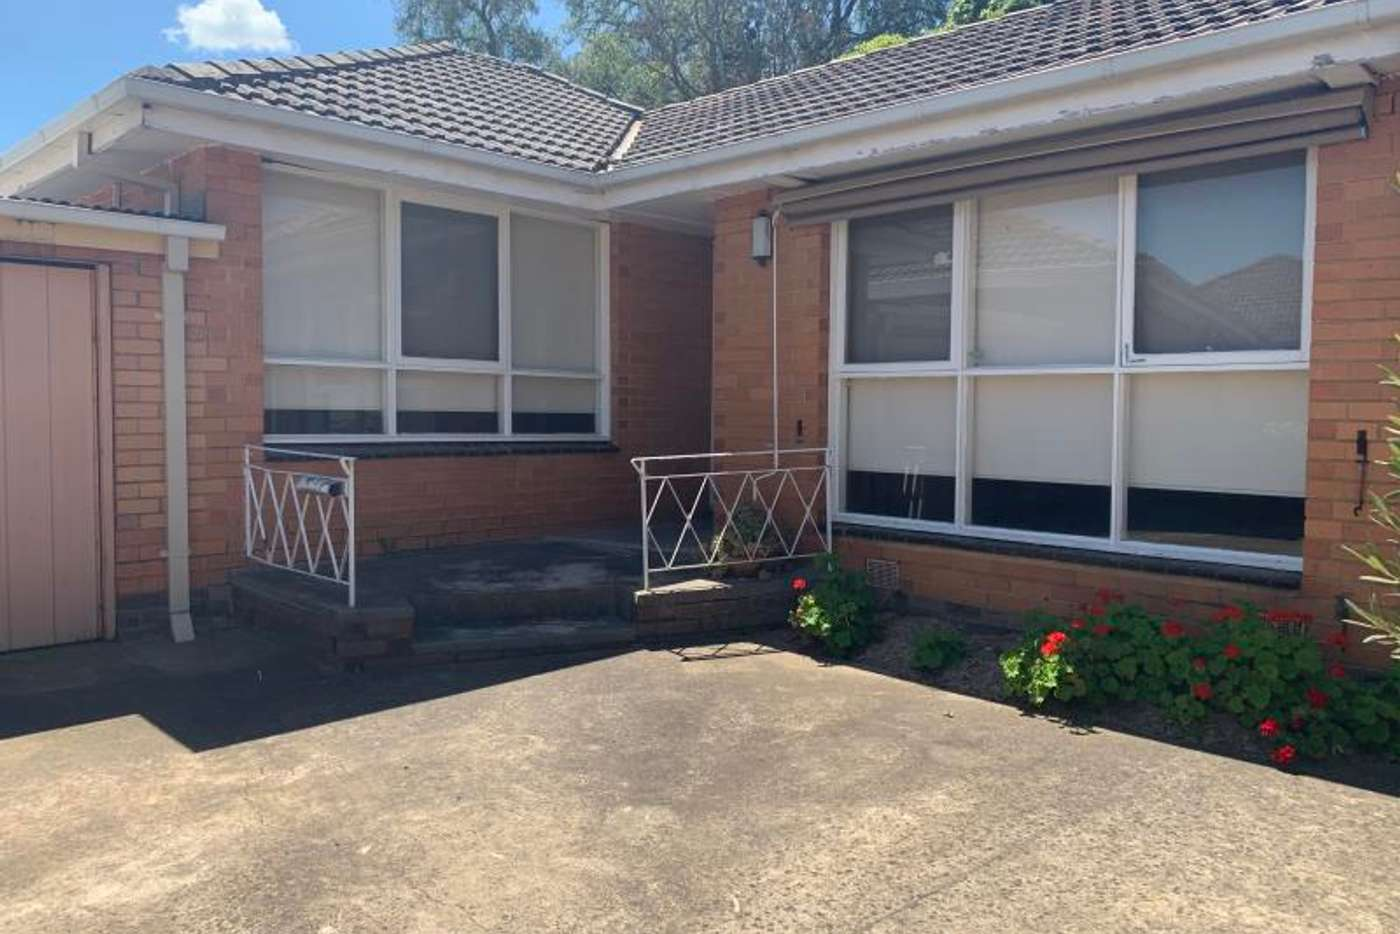 Main view of Homely villa listing, 6/48 Serrell Street, Malvern East VIC 3145